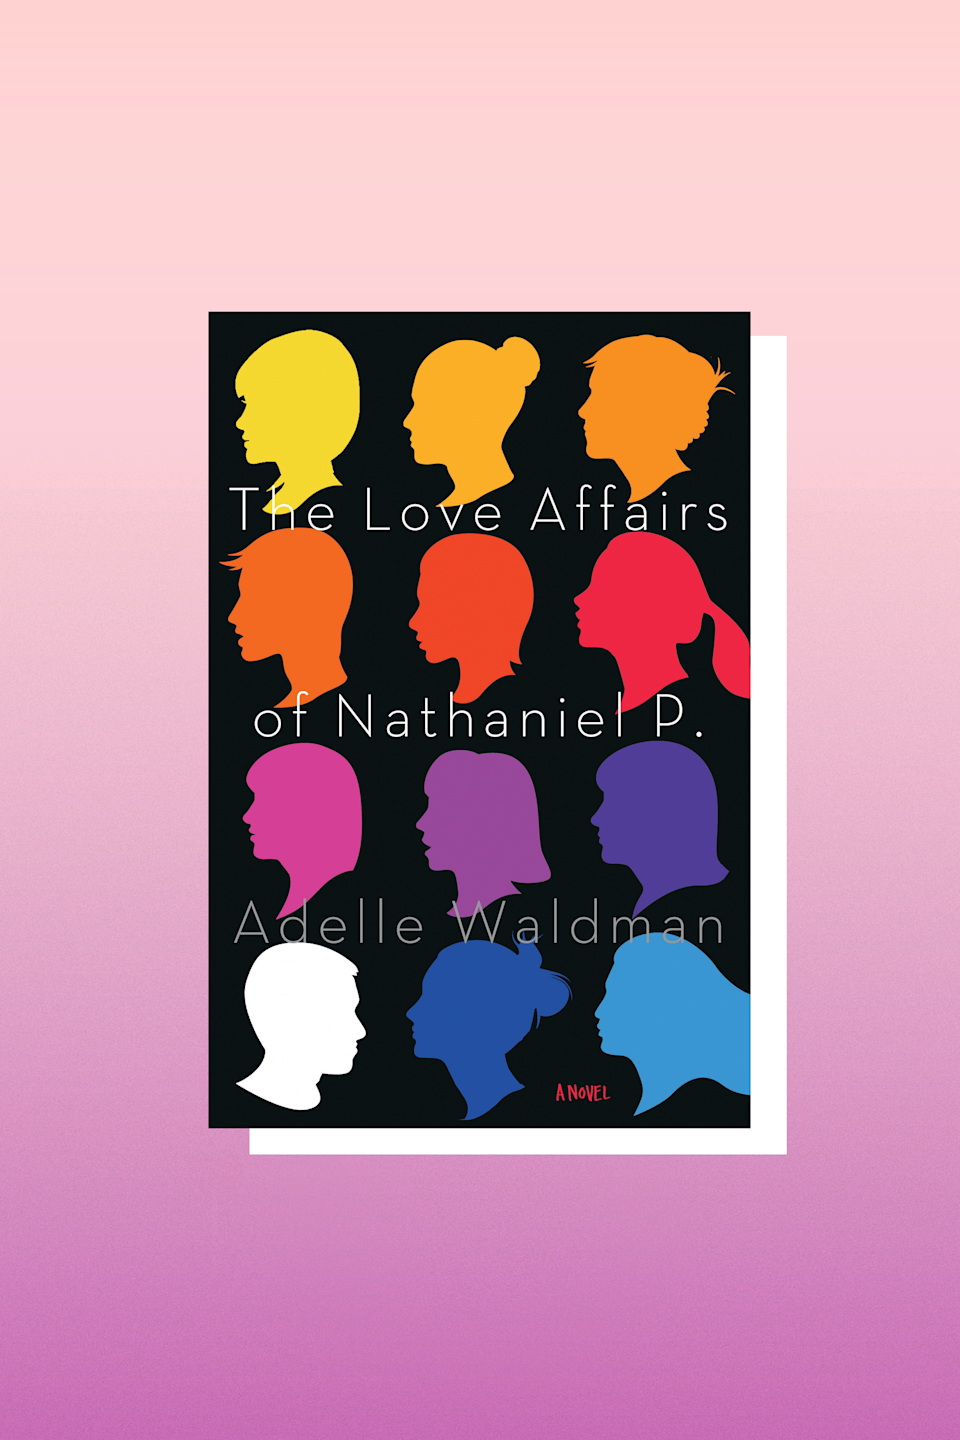 """If you need an introspective, not overly cheesy, novel about dating as a young adult in New York City, curl up with this one. It's a little cynical, but sometimes breakups can do that to you.<br><br>""""Dating is probably the most fraught human interaction there is. You're sizing people up to see if they're worth your time and attention, and they're doing the same to you. It's meritocracy applied to personal life, but there's no accountability."""" - <em>The Love Affairs of Nathaniel P.</em>"""